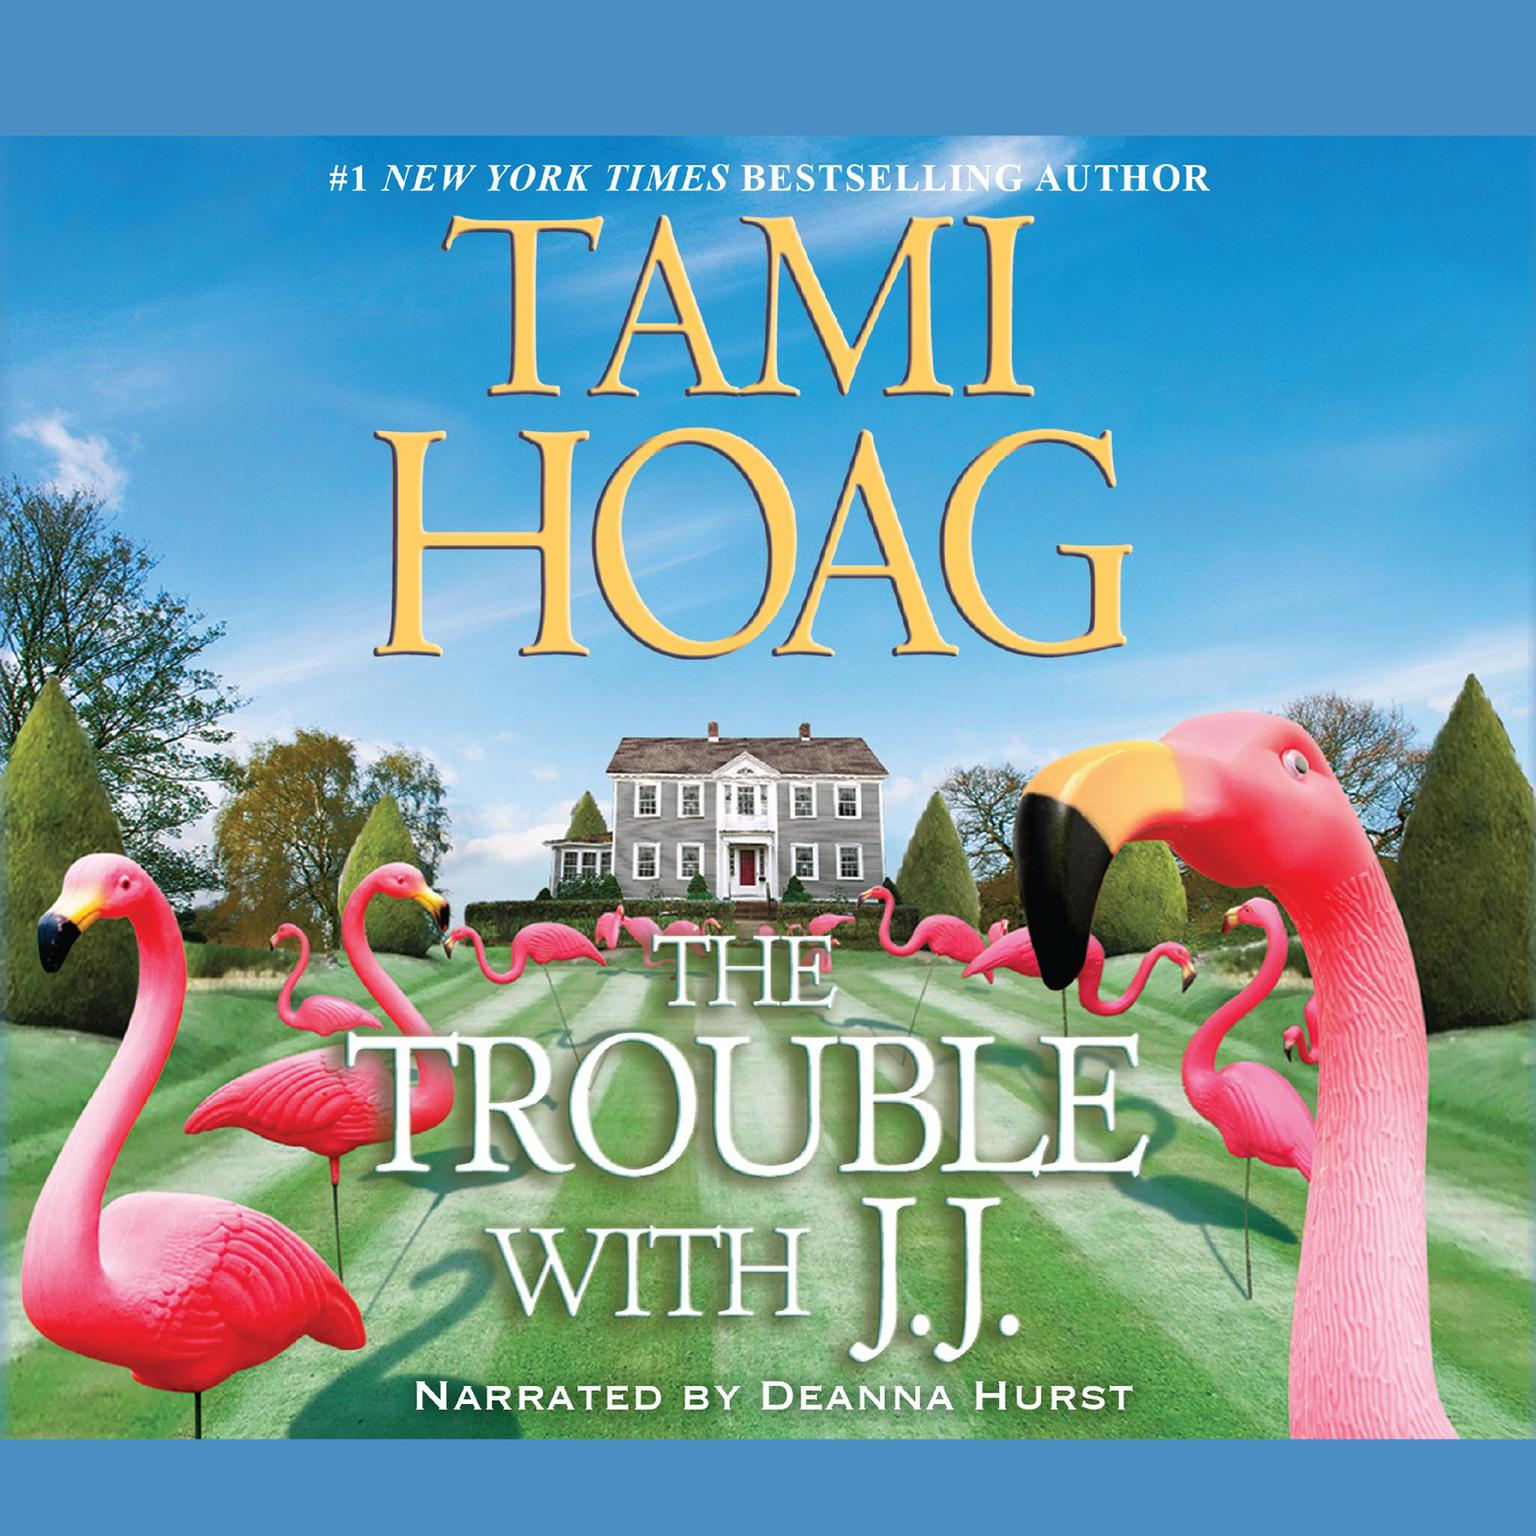 Printable The Trouble with J. J. Audiobook Cover Art